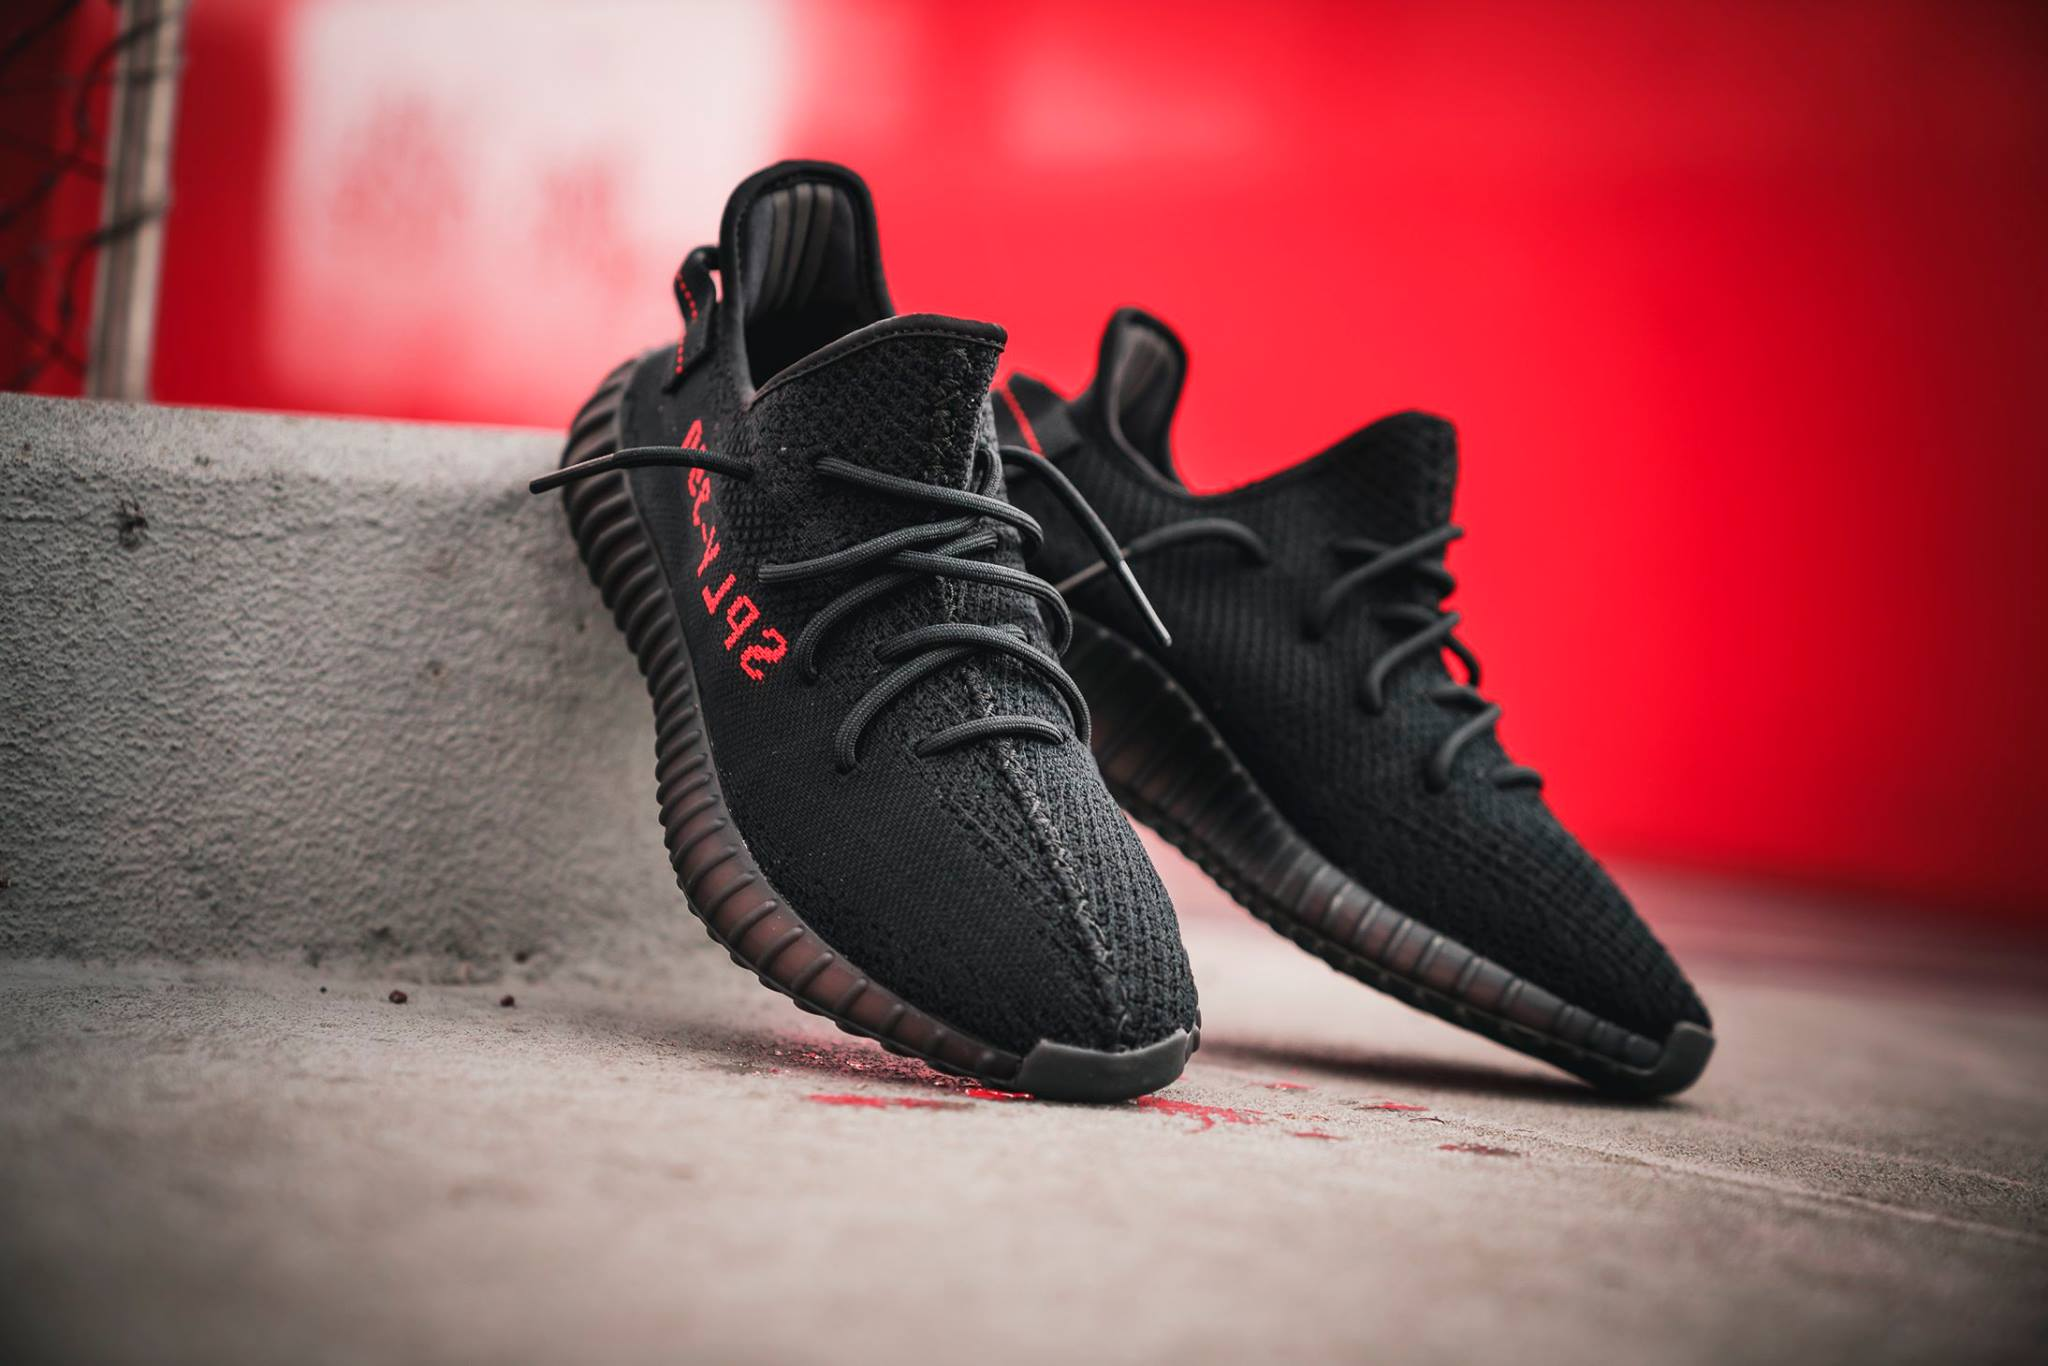 adidas YEEZY BOOST 350 V2 Core Black Red CP9652 4